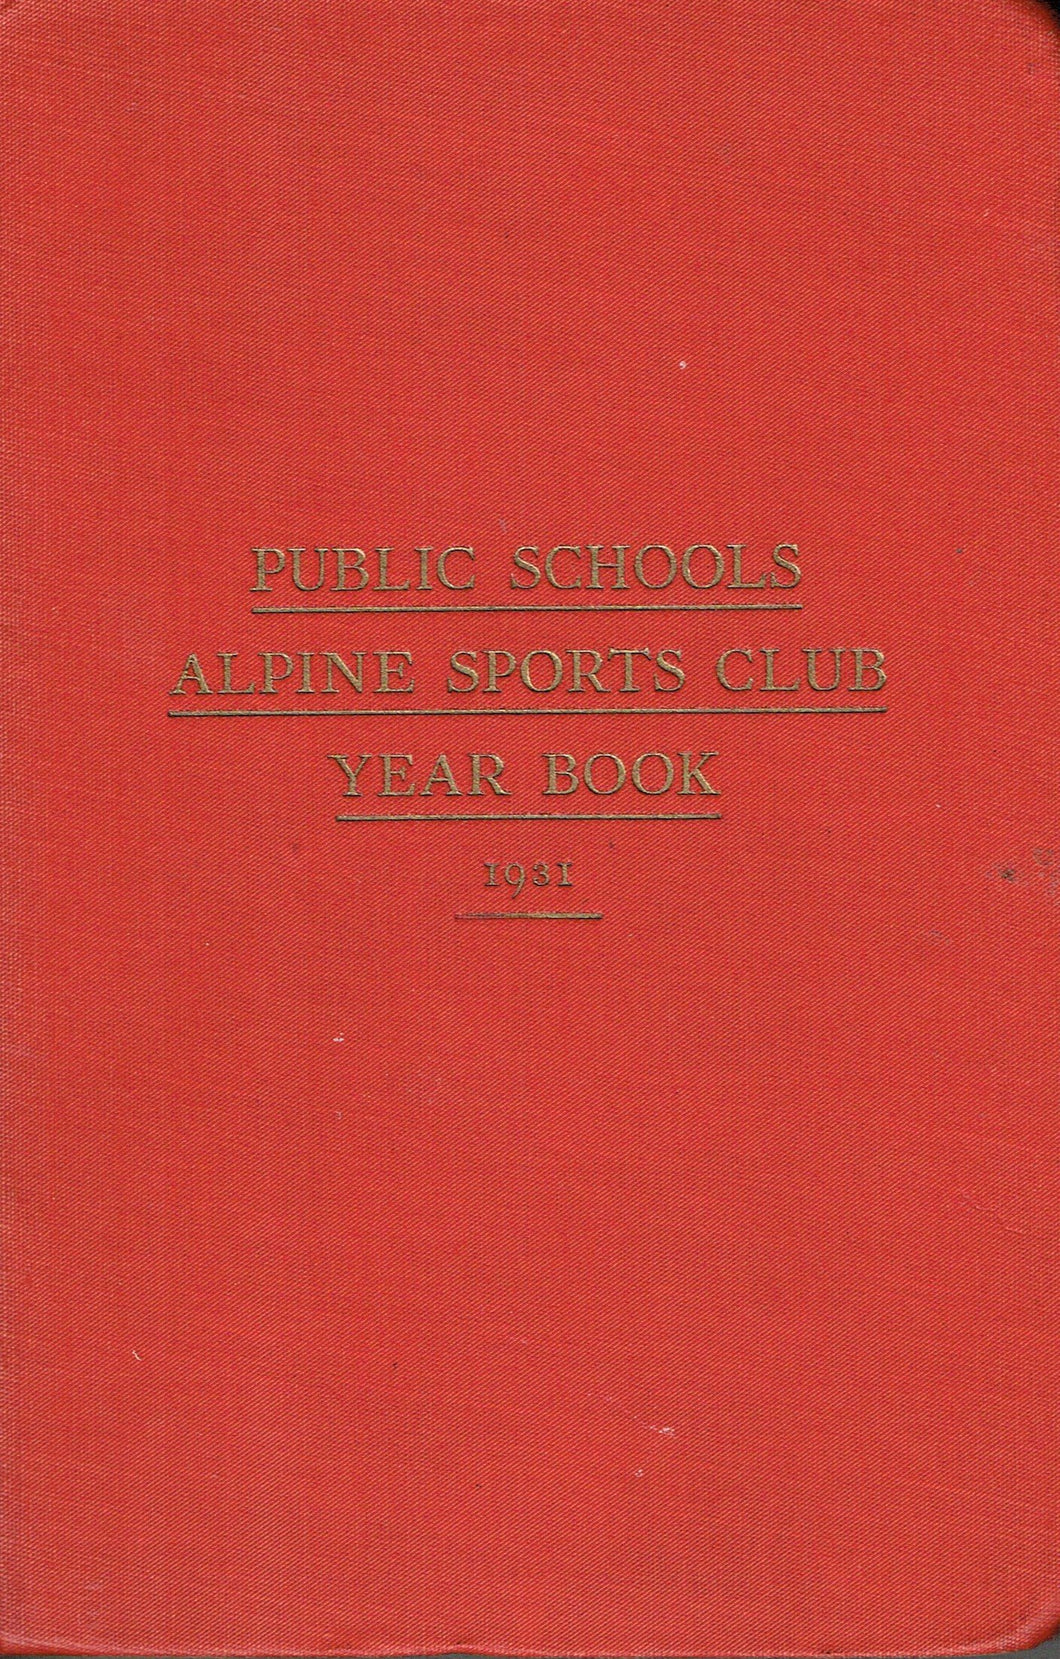 Public Schools Alpine Sports Club Year Book 1931